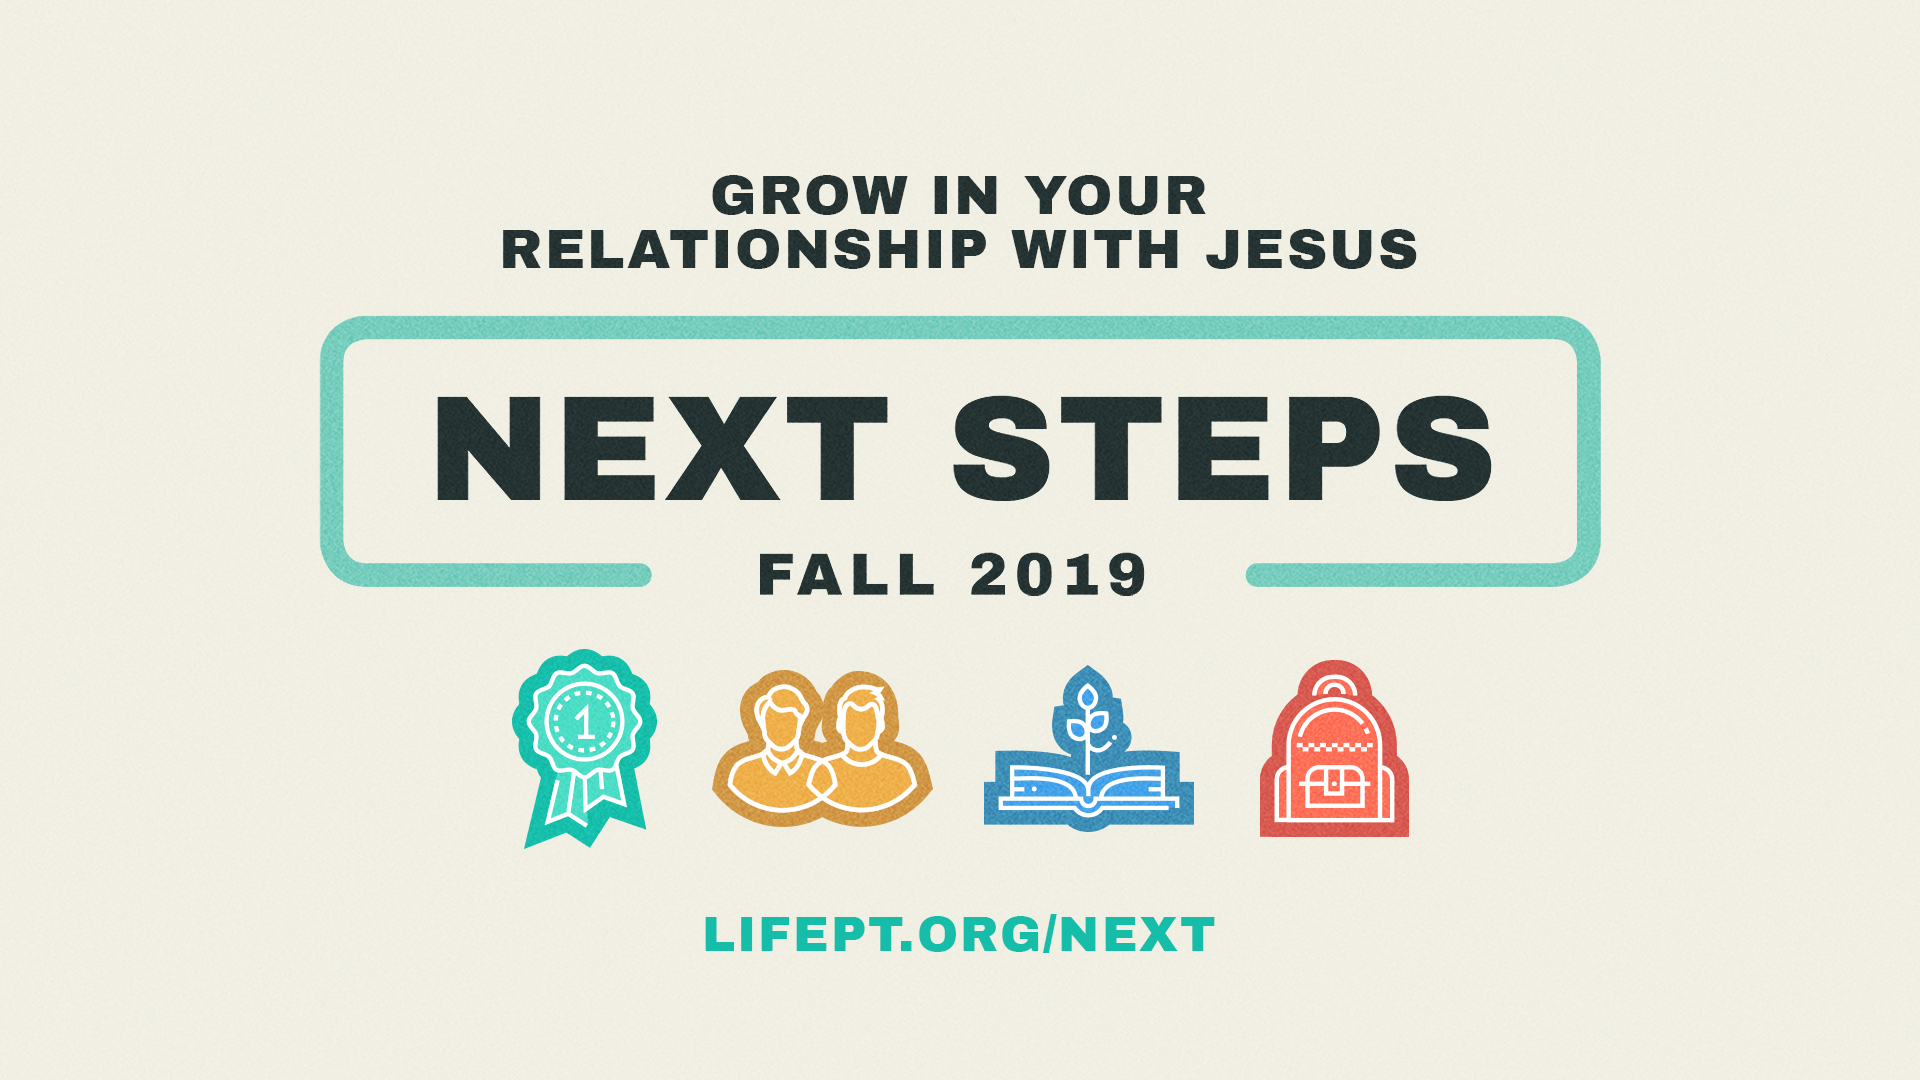 next-steps-fall-2019.jpg